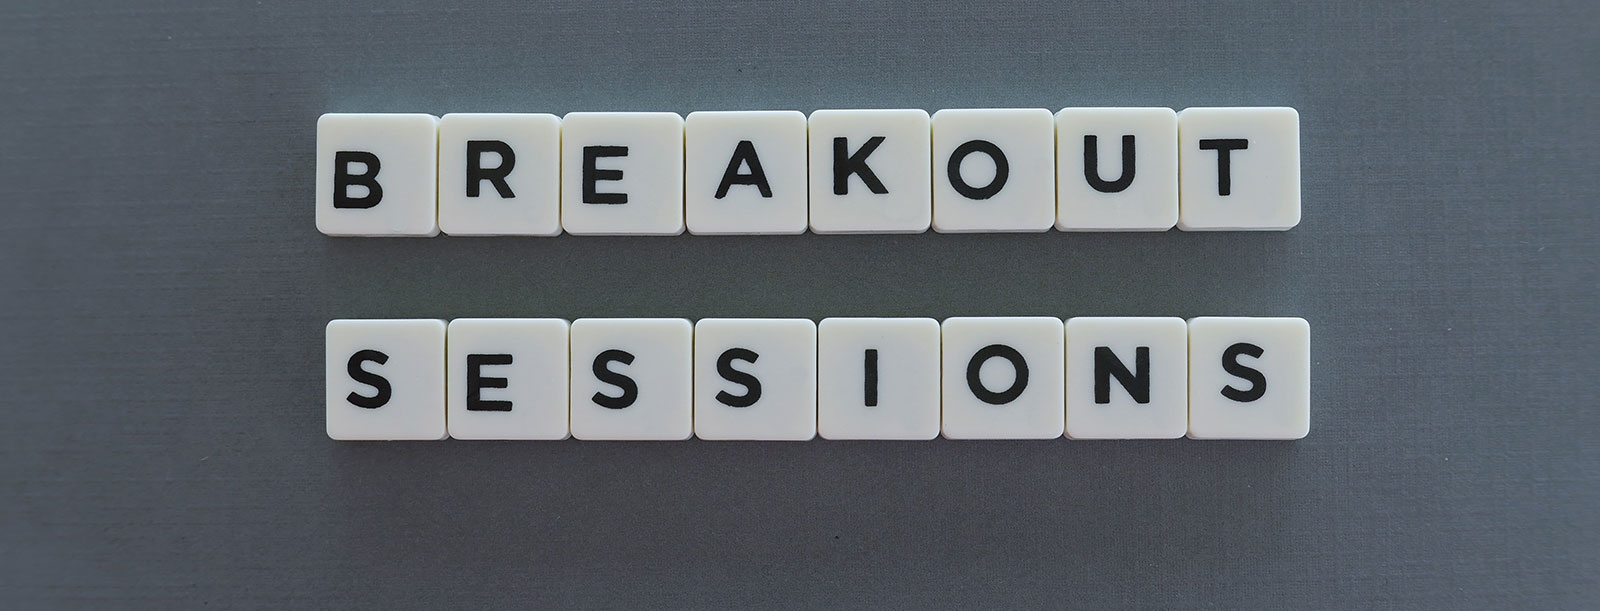 Breakout Session in MS Teams